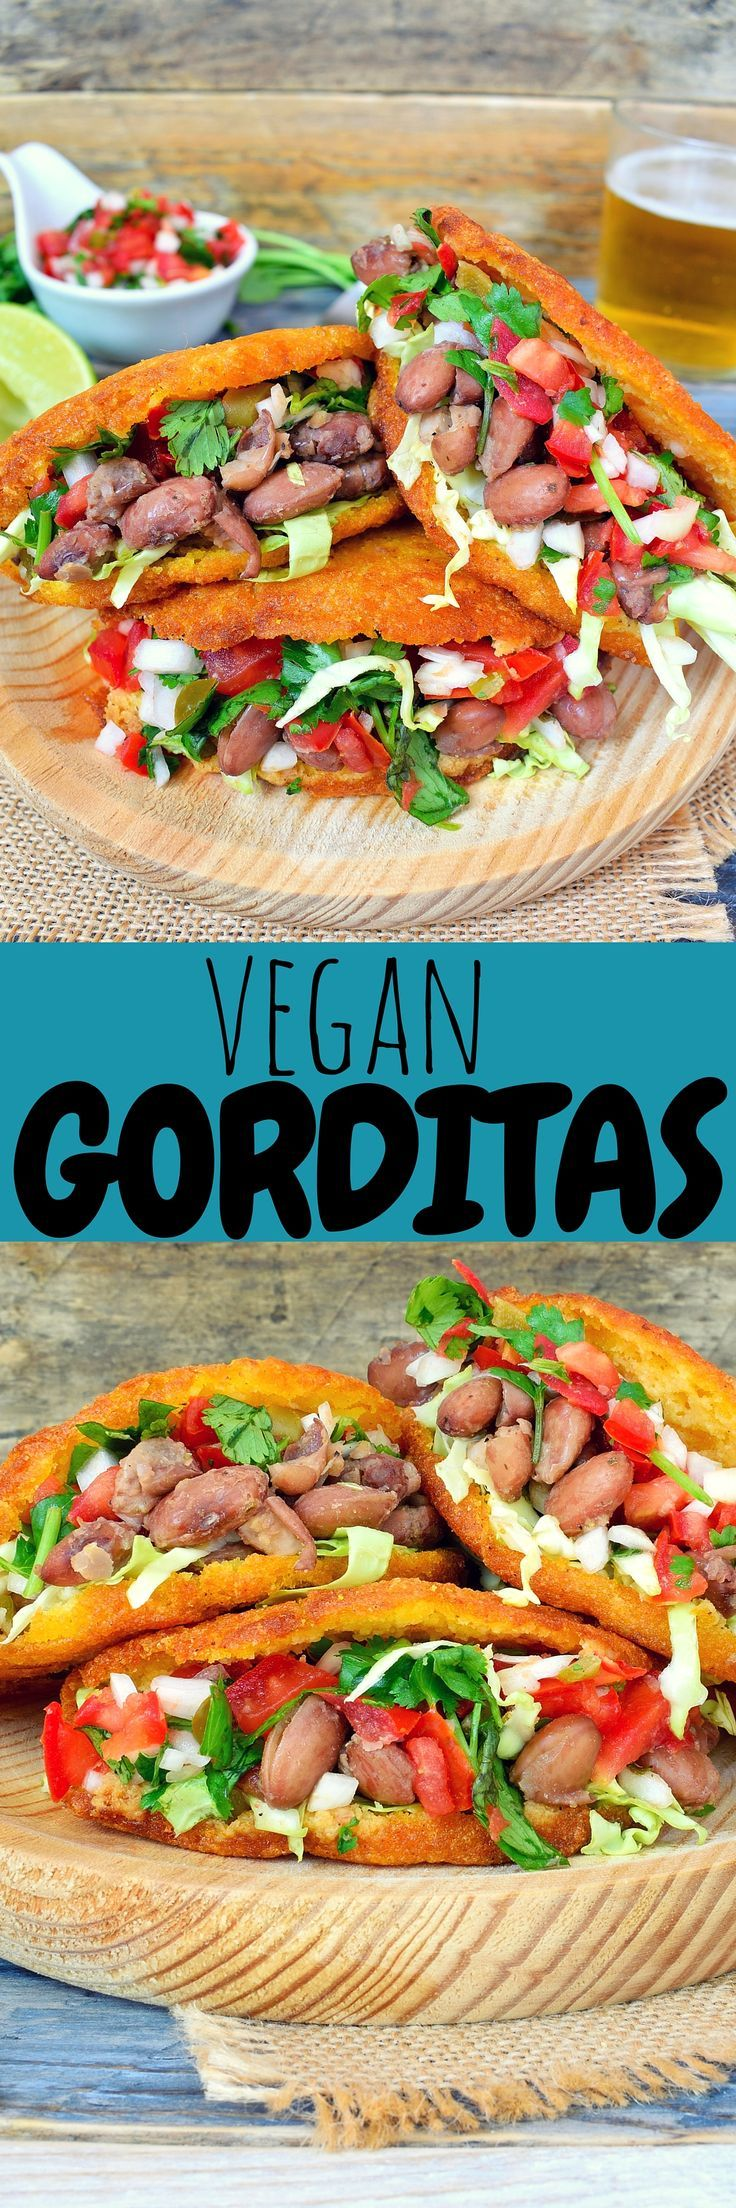 The best of Mexican street food, vegan gorditas are fried cornbread pockets stuffed with beans, pico de gallo and avocado. Great for a snack, lunch or dinner!